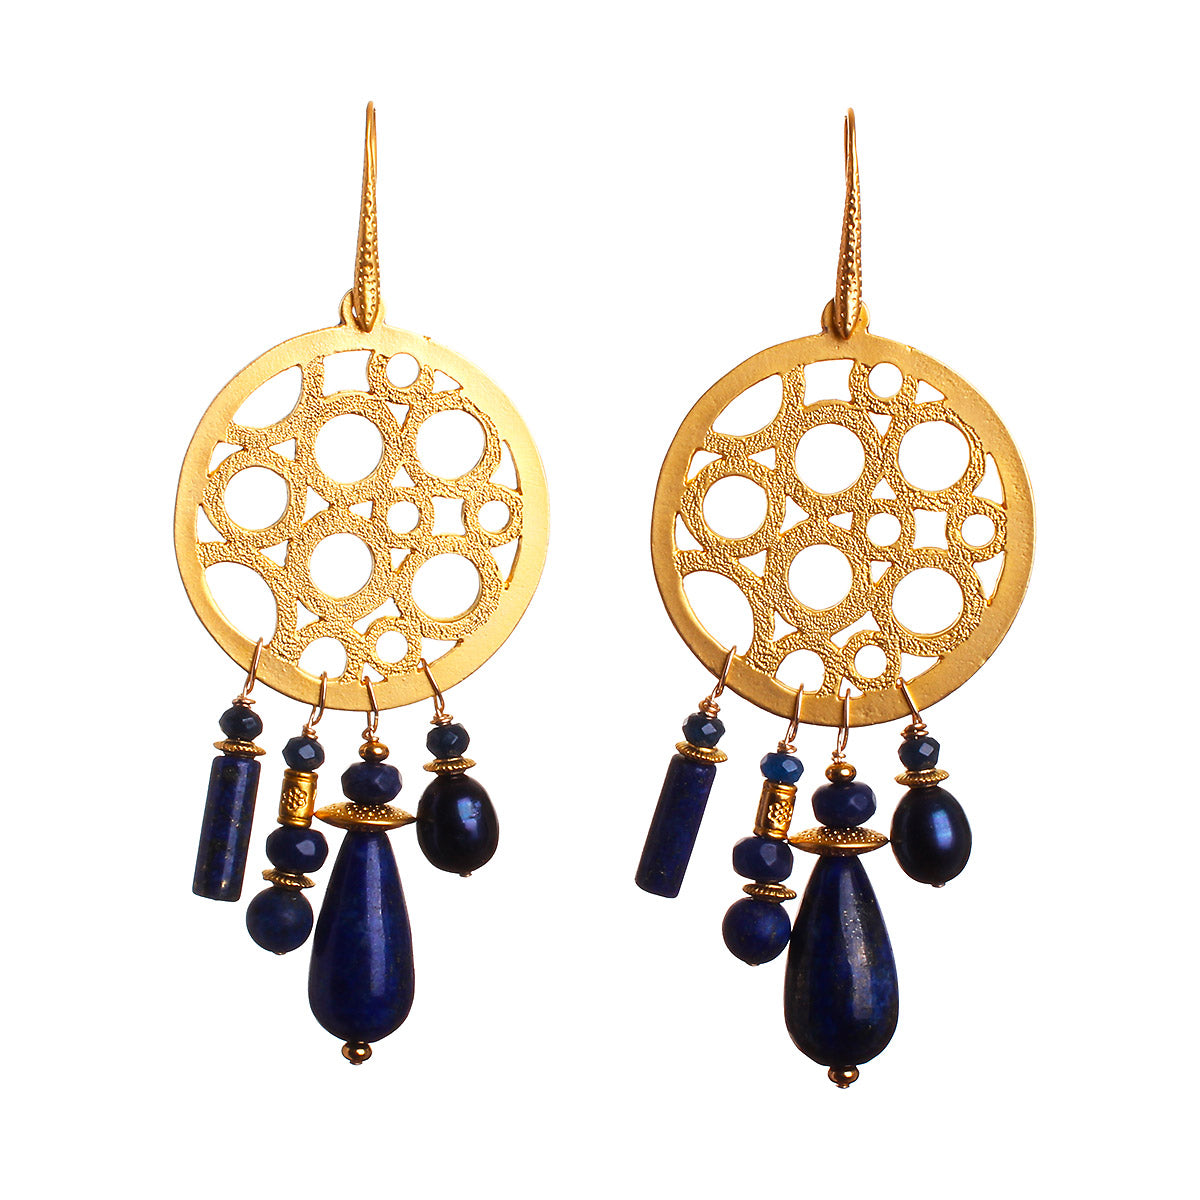 N°477 The Great Lapis Lazuli Escape Statement Earrings